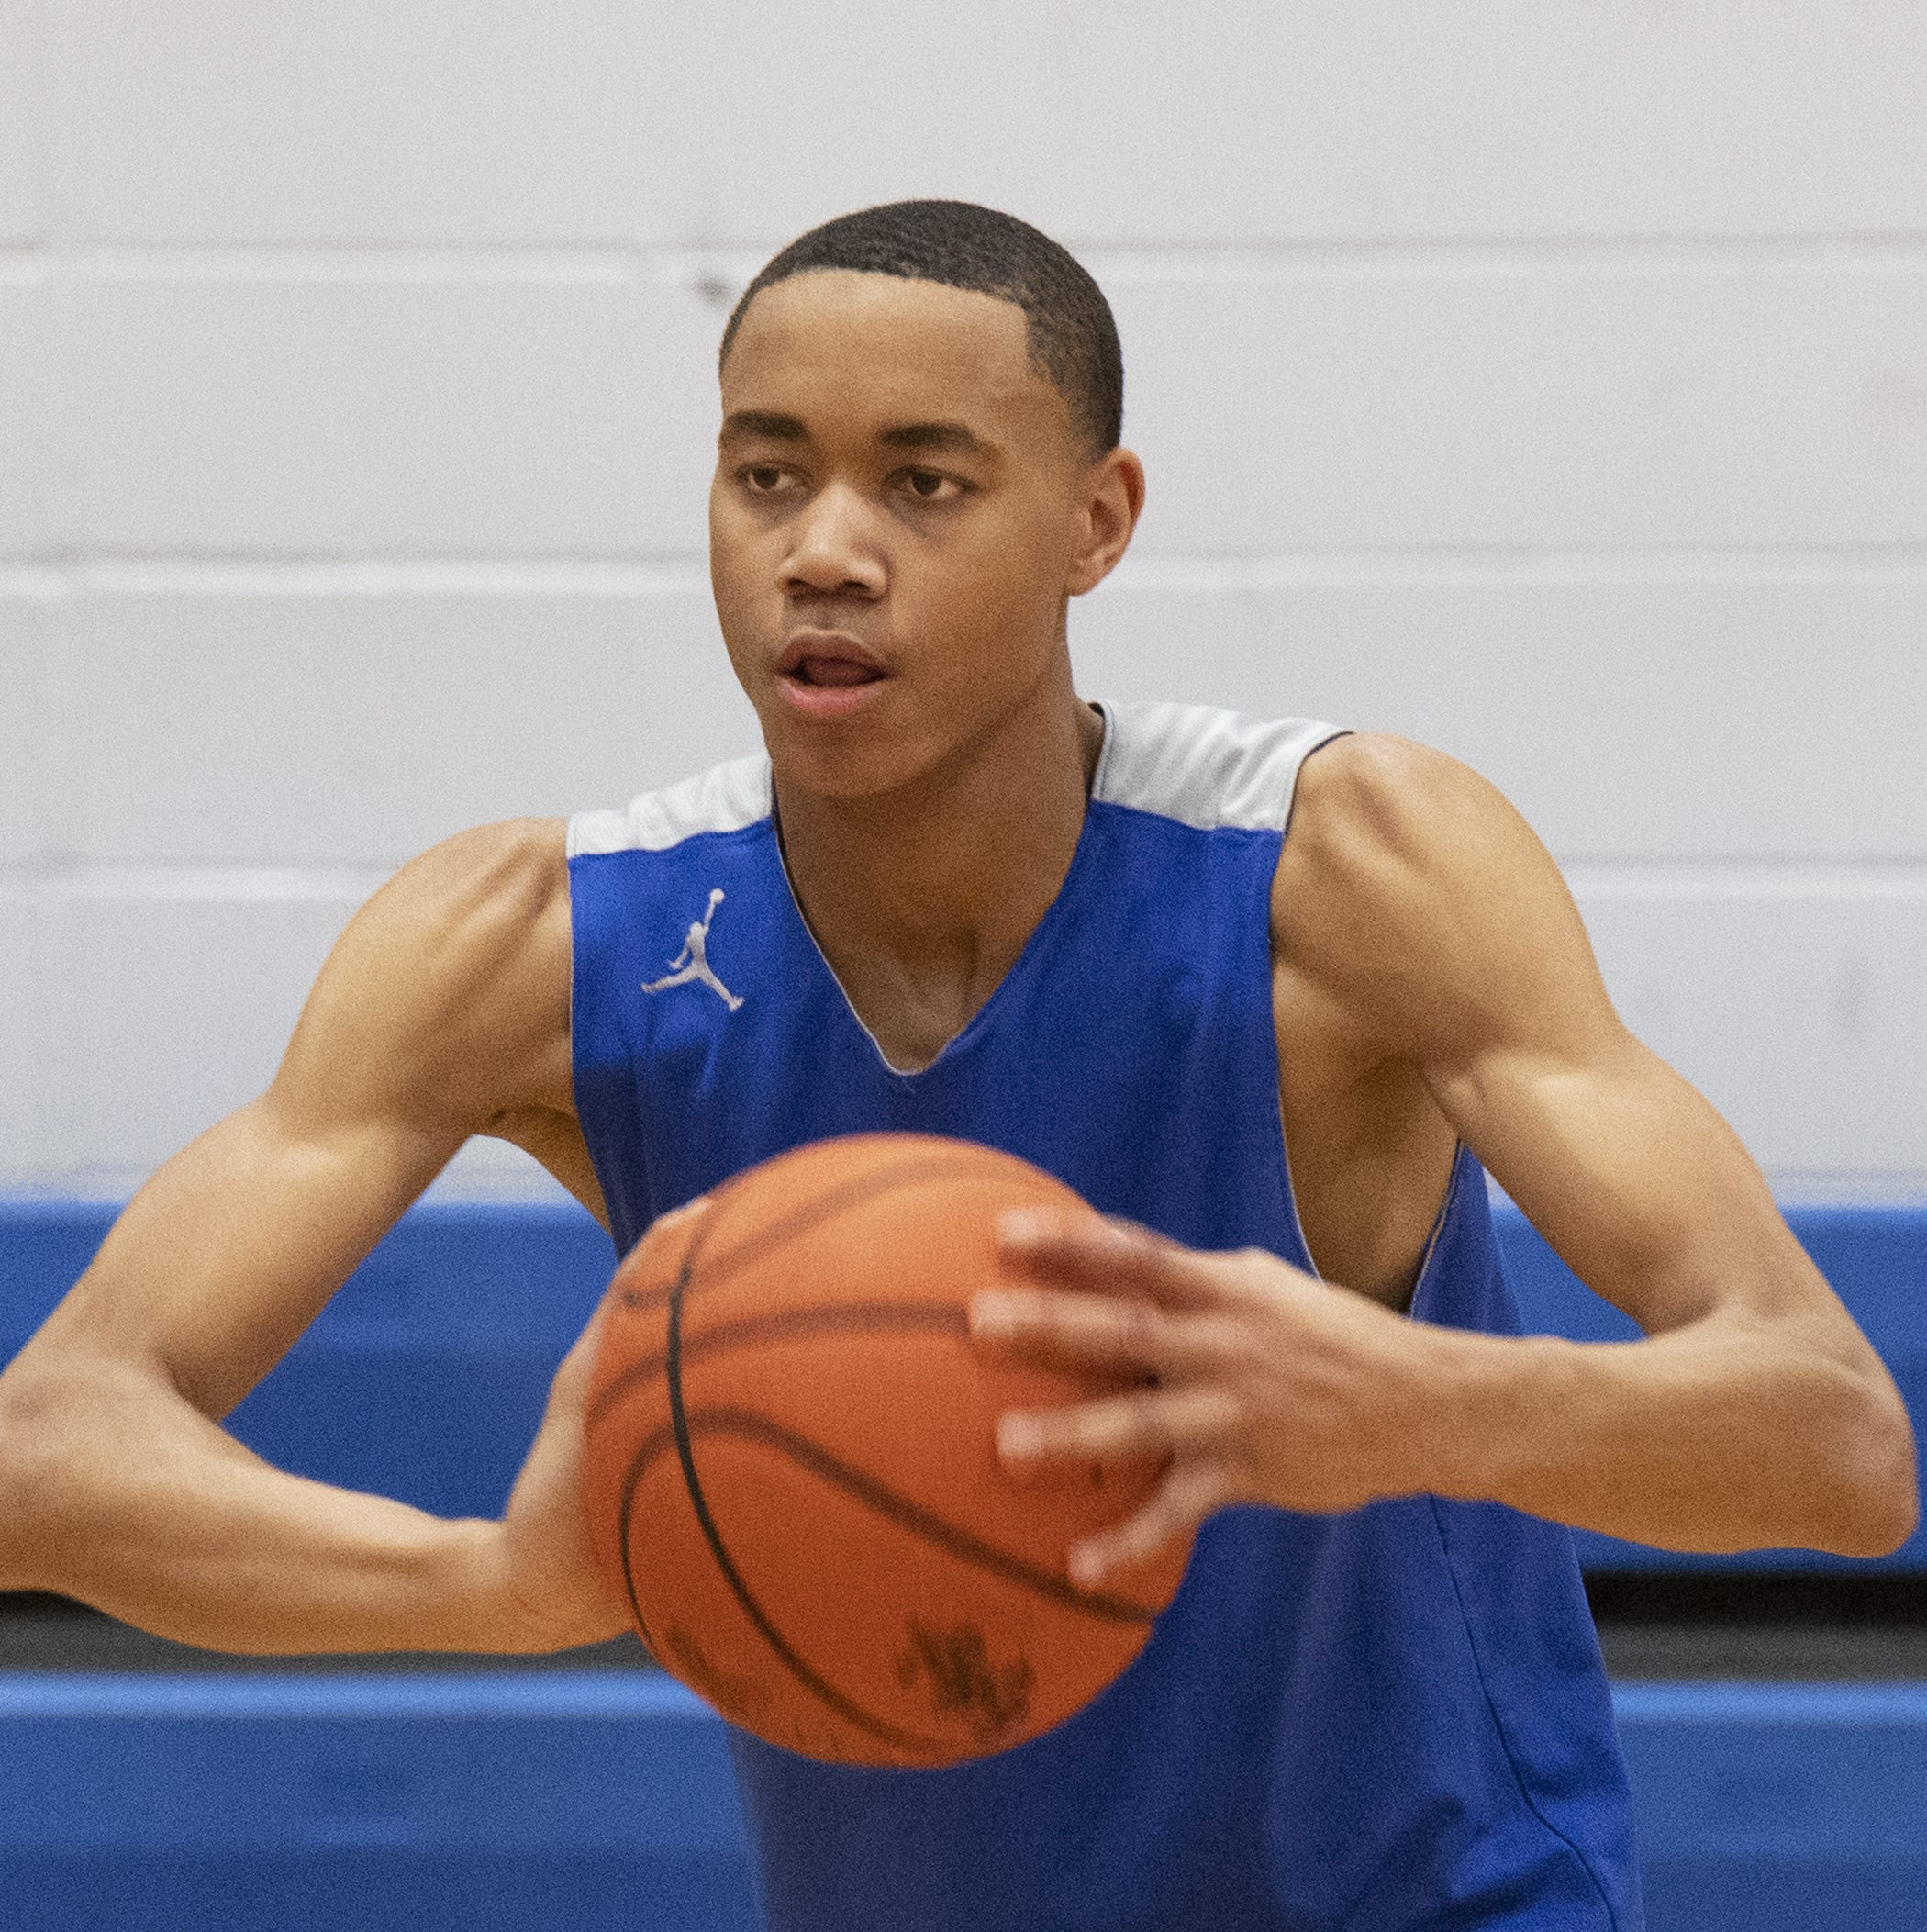 Wren sophomore Bryce McGowens has been named to the South Carolina Basketball Coaches Association Class AAAA All-State basketball team.